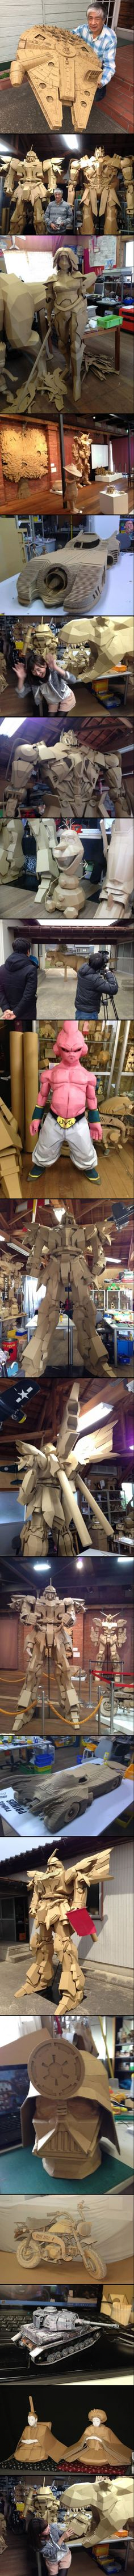 Masahiko Senda, God of Cardboard Art